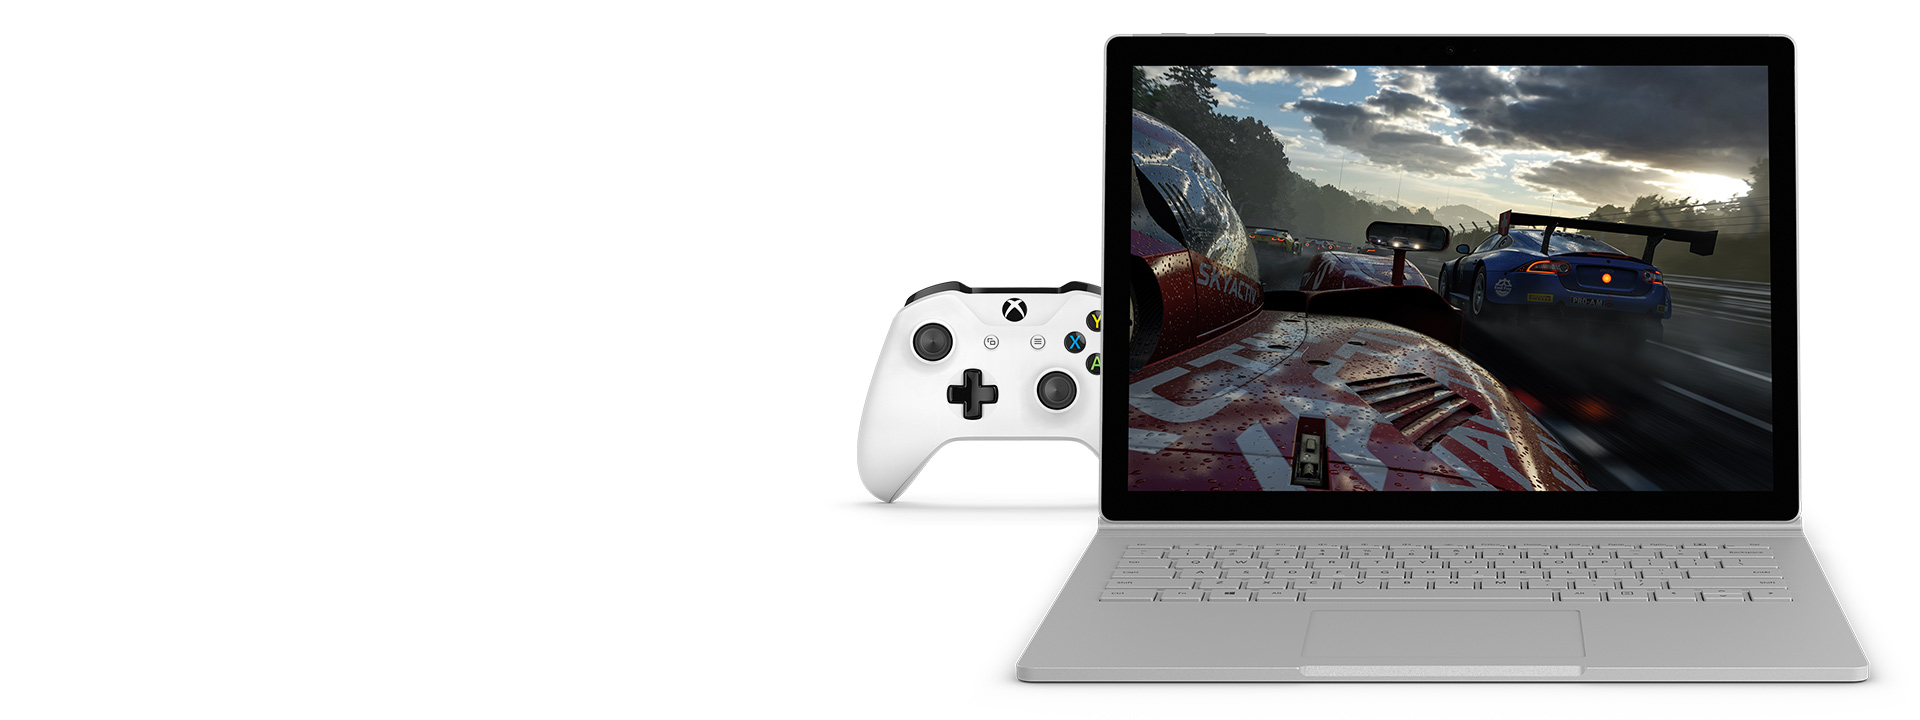 Gamen op de Surface Book 2 met Xbox Wireless Controller